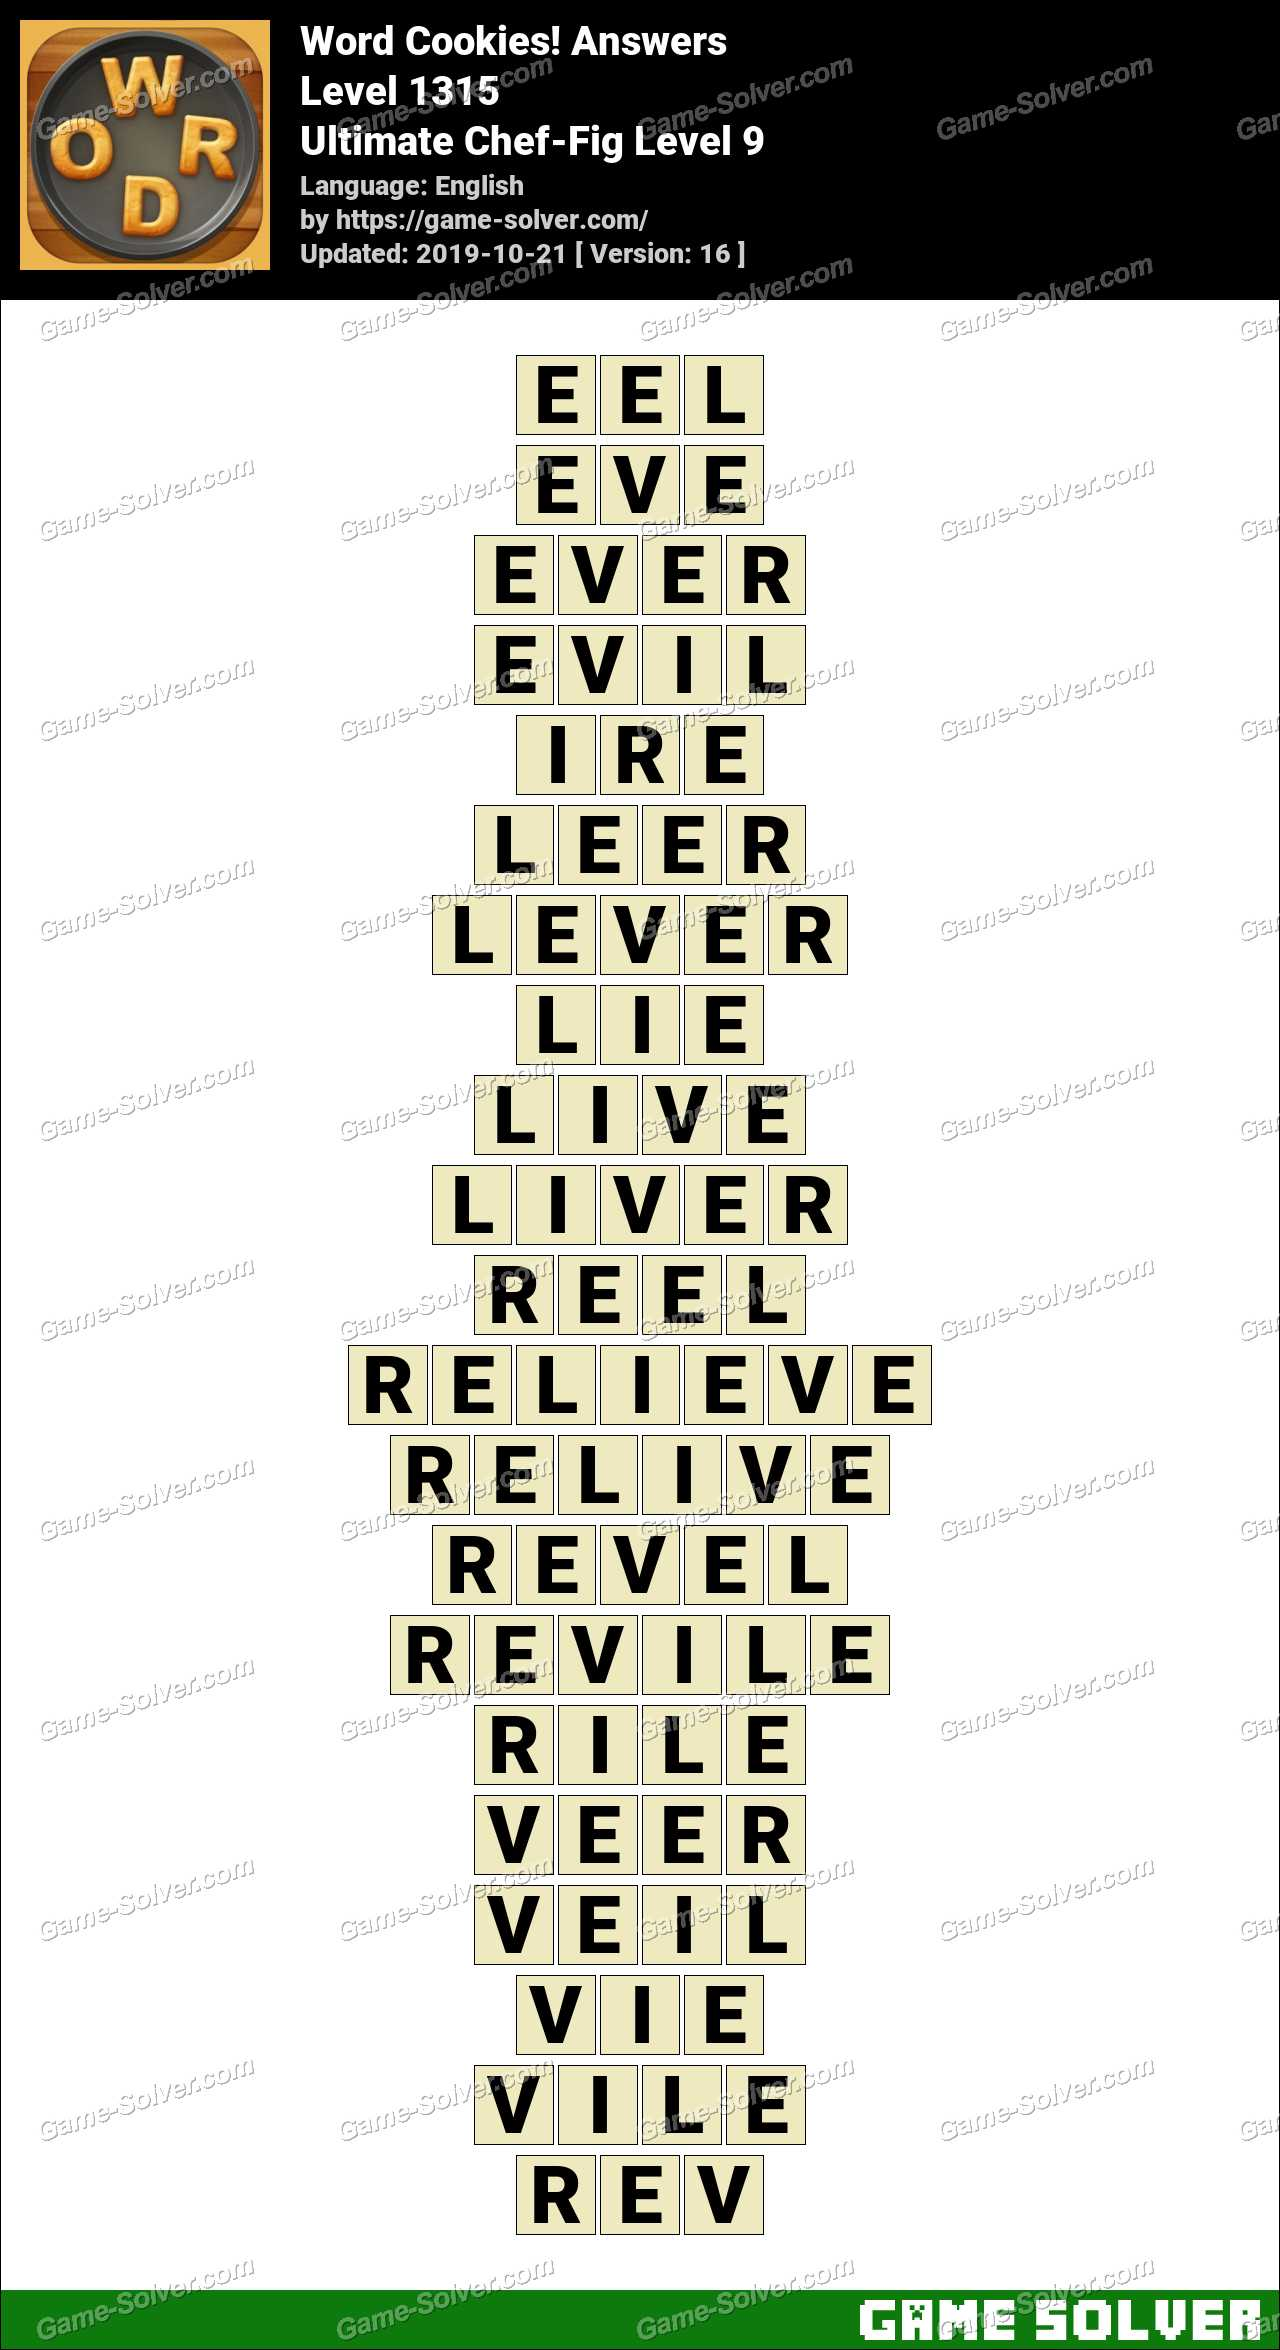 Word Cookies Ultimate Chef-Fig Level 9 Answers